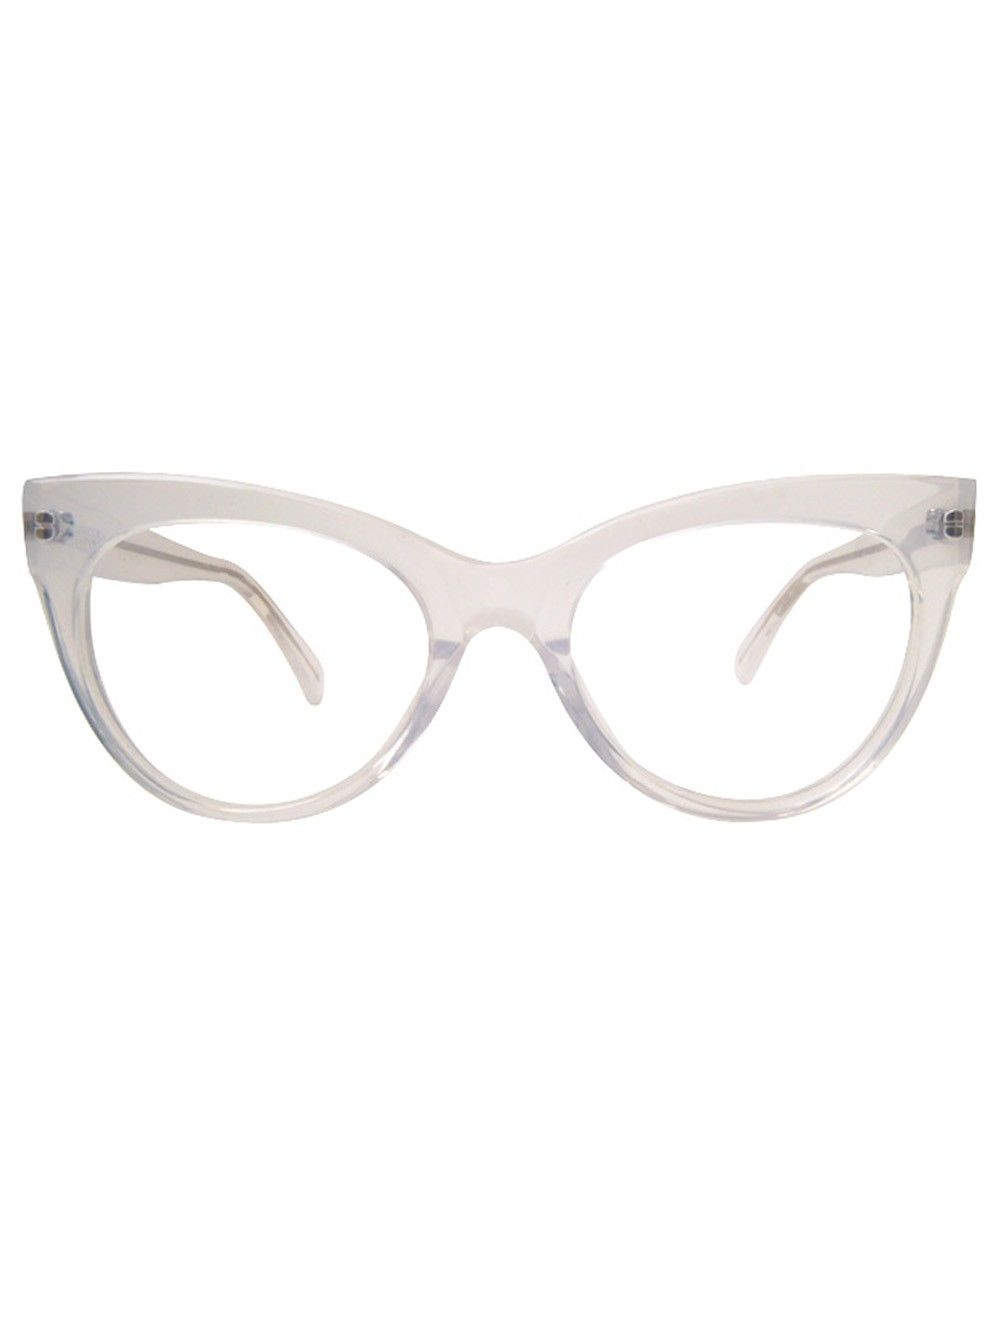 60e227fb51 Square Cat Eye Glasses   Clear - Kamali Kulture - Designers